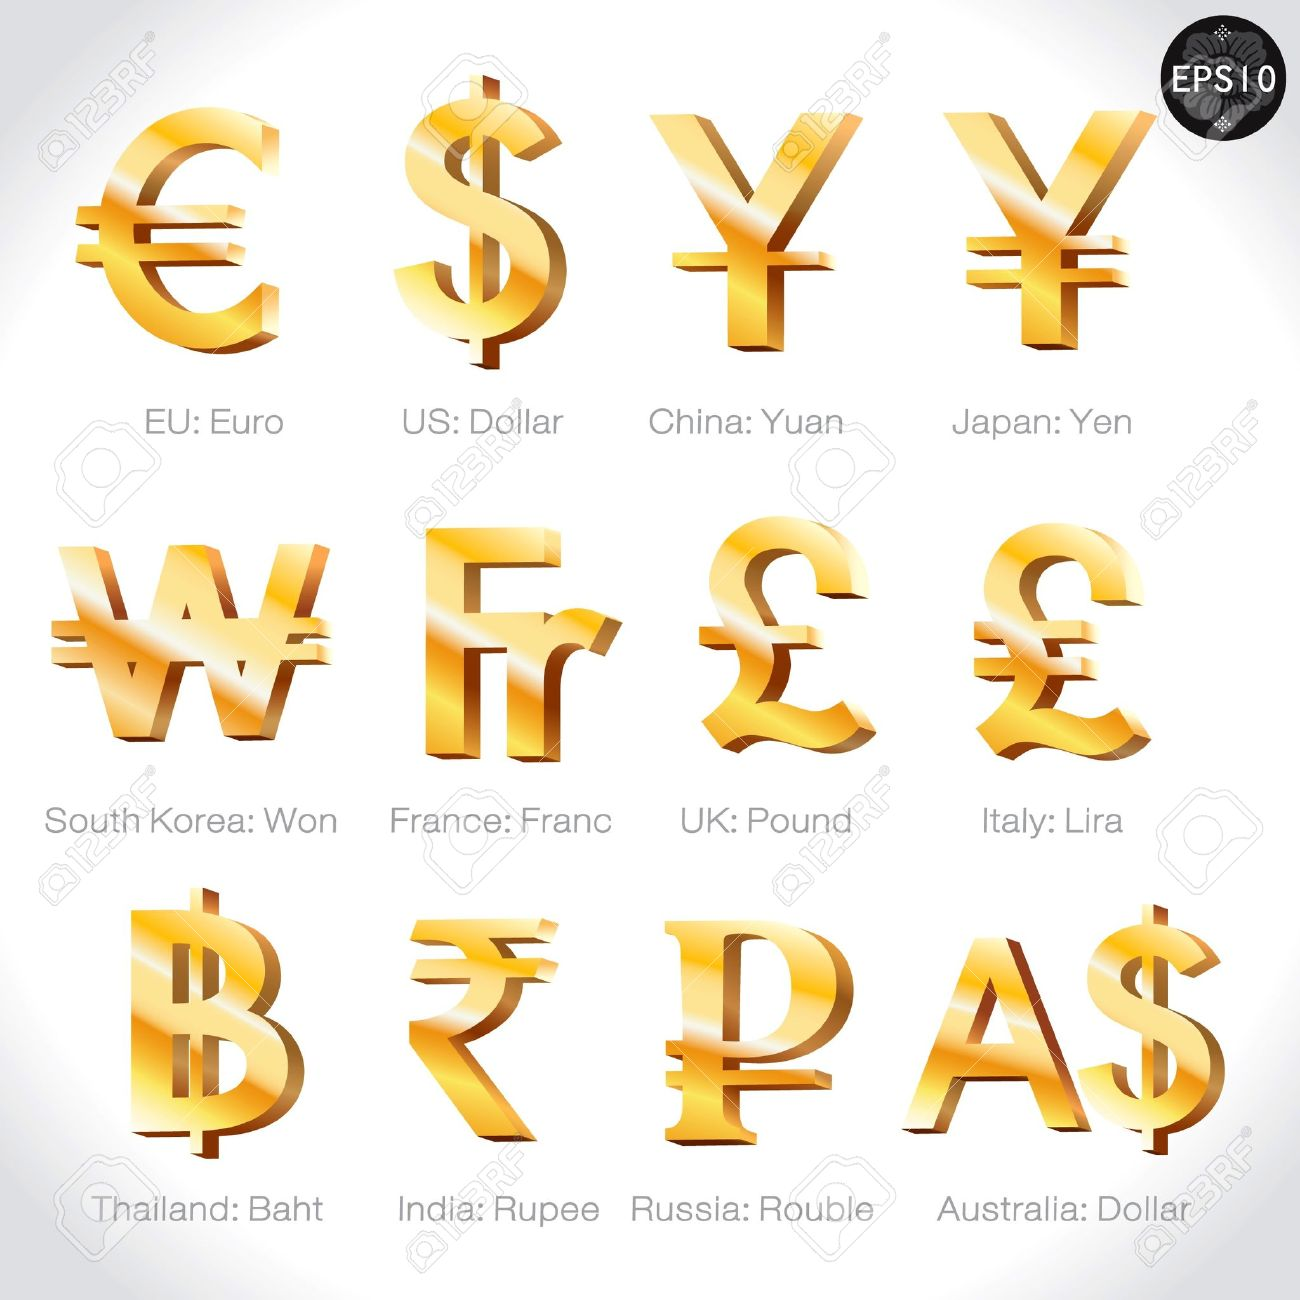 Currency signs dollar euro yen yuan wonfrancpoundlir currency signs dollar euro yen yuan wonfrancpound biocorpaavc Image collections